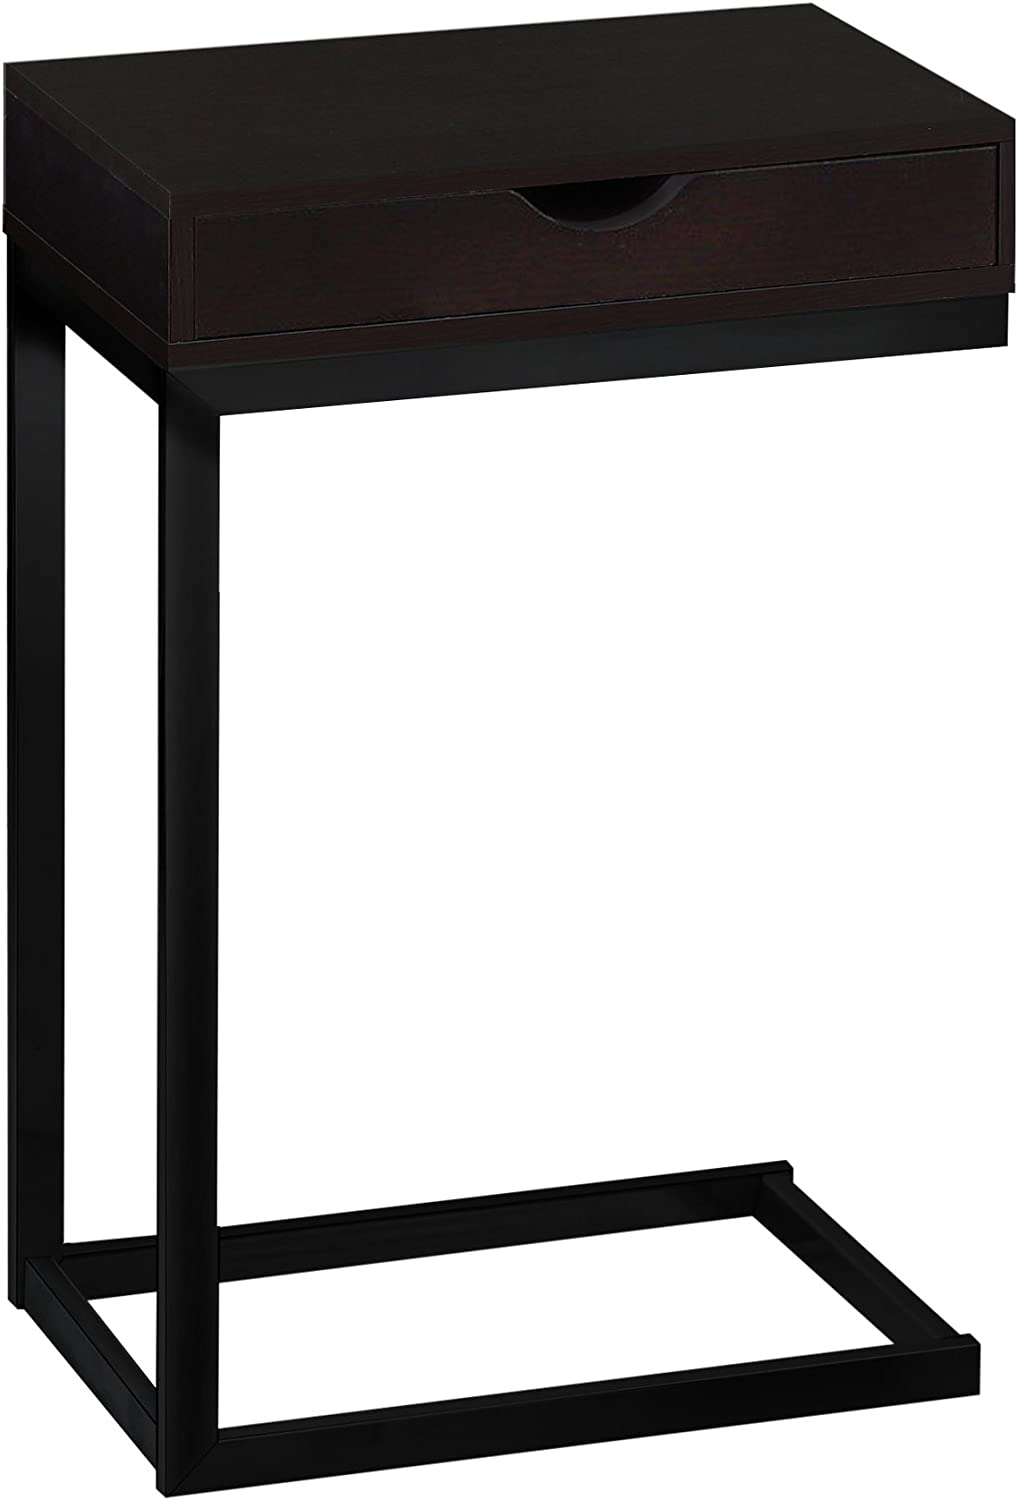 Monarch Specialties C Accent Table Metal New products world's highest Spring new work one after another quality popular Base with Drawer-Black